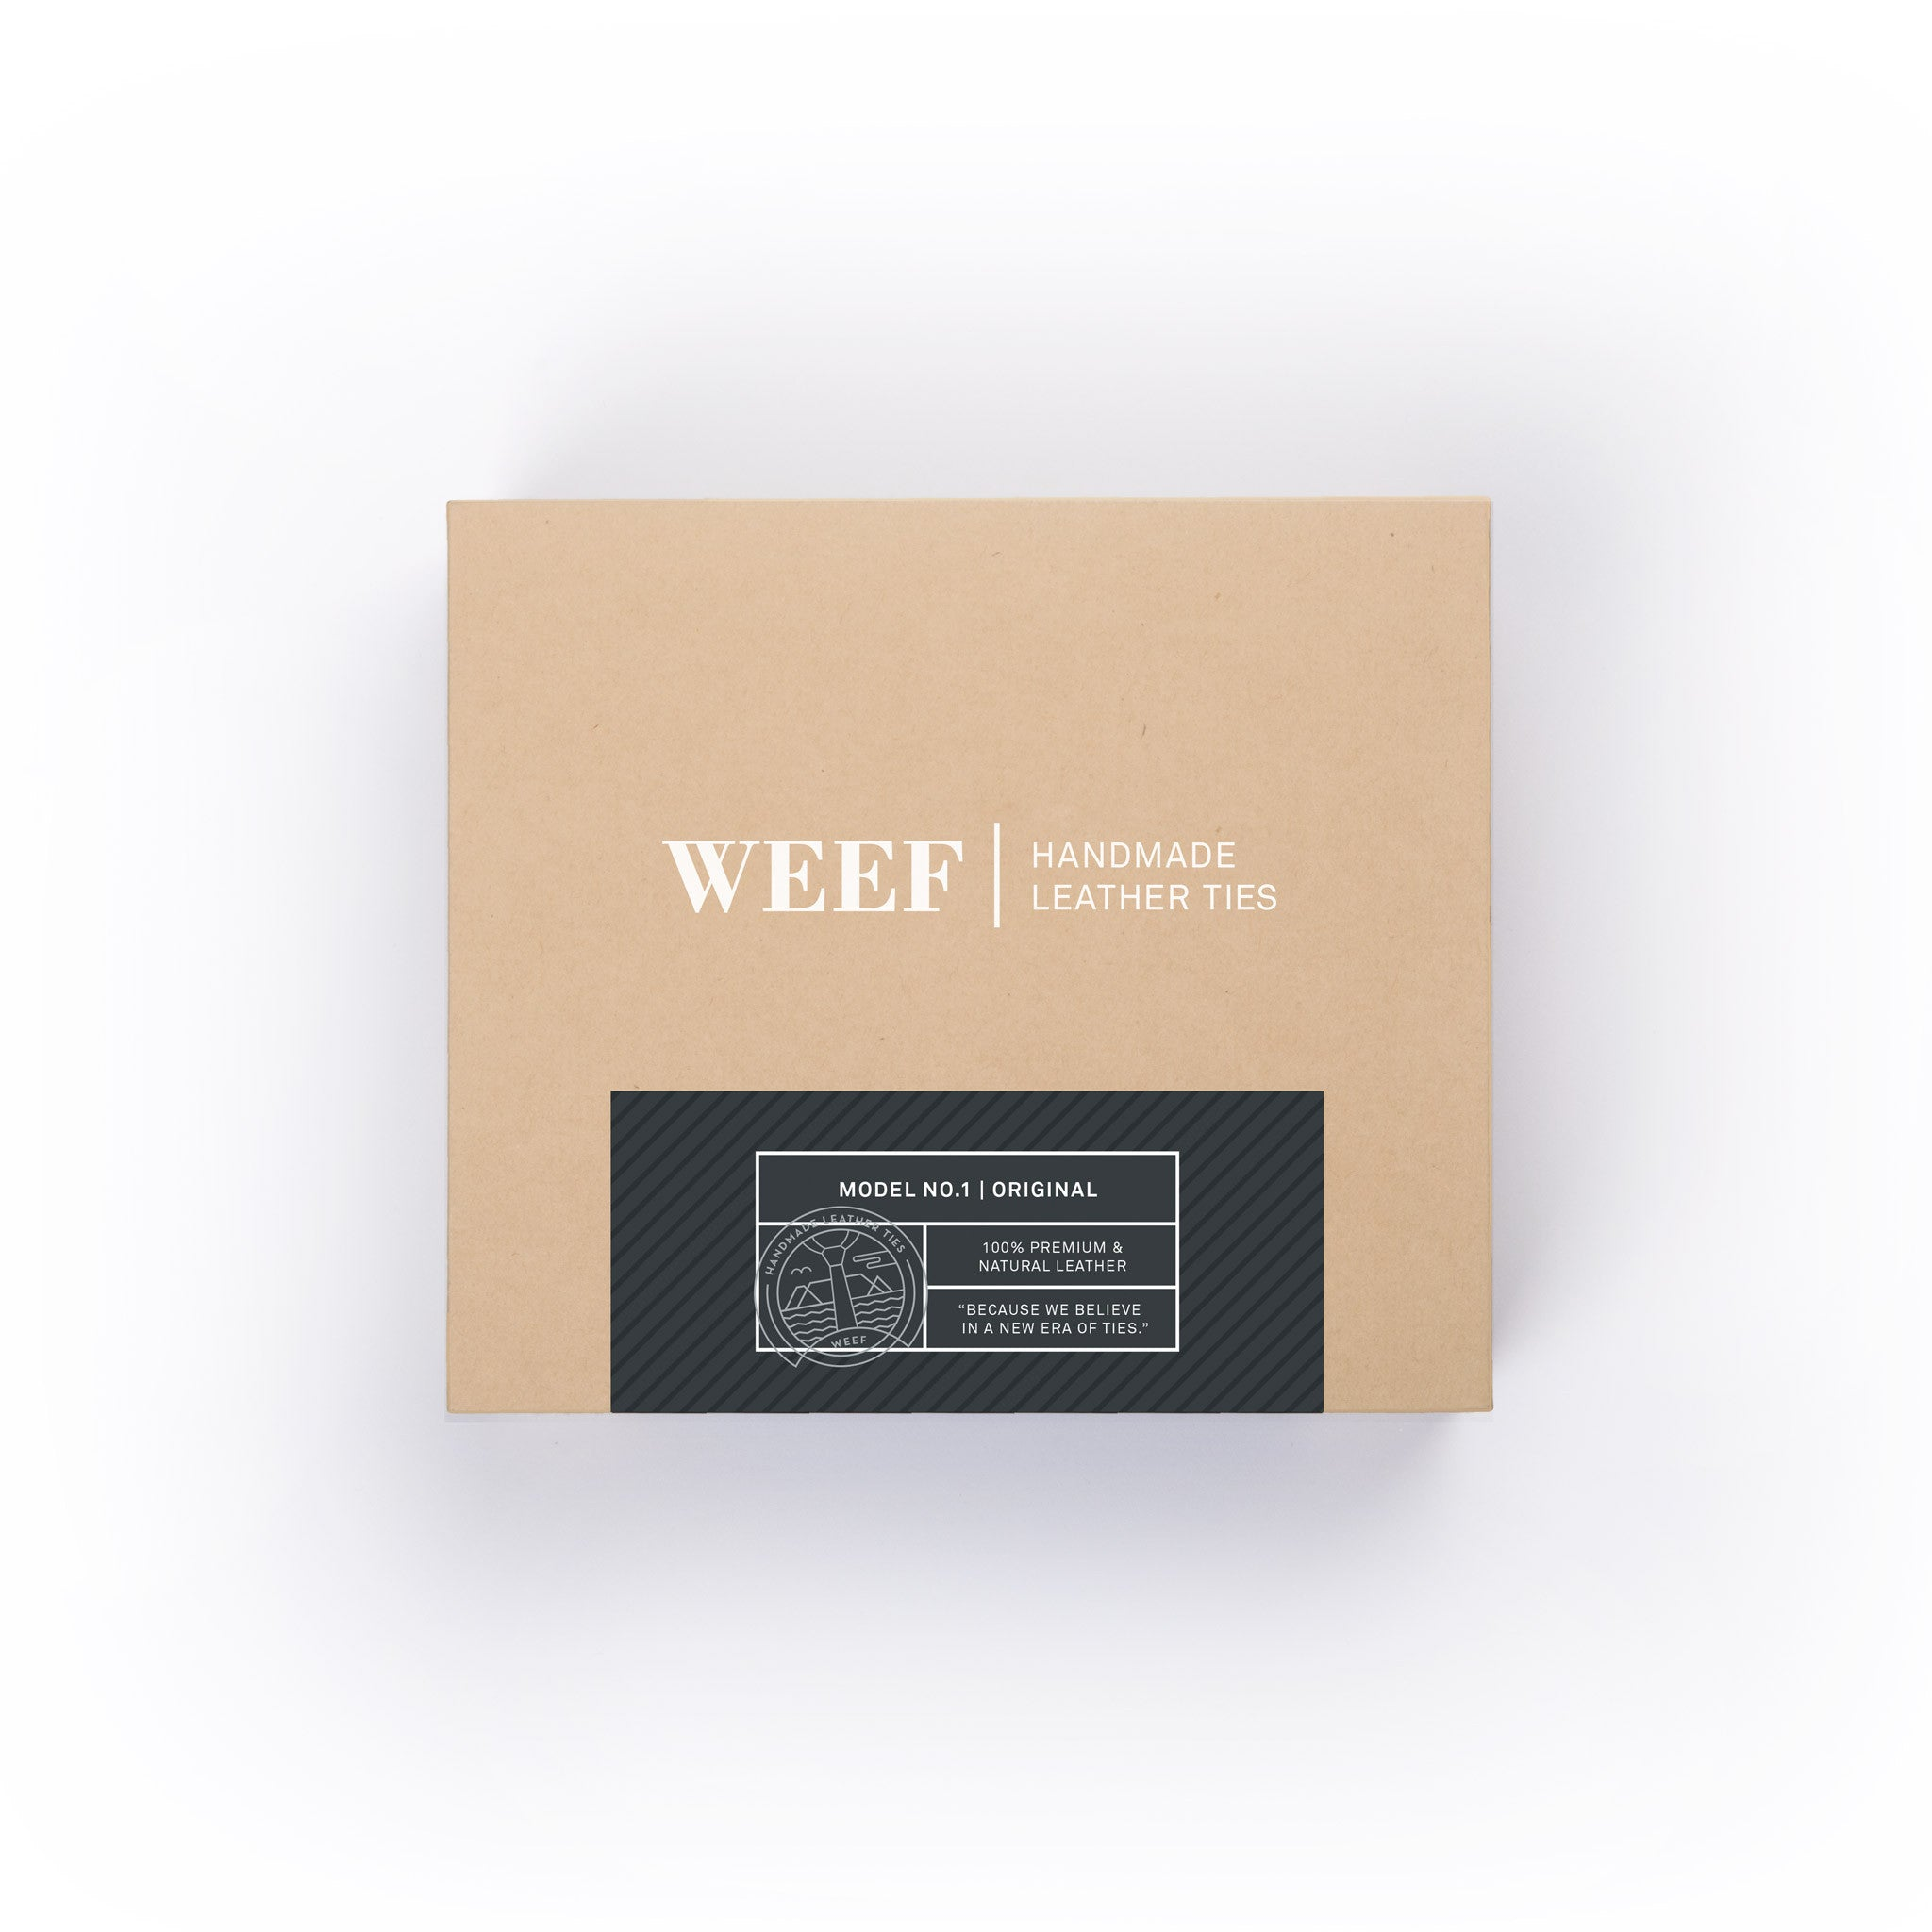 This is the premium packaging box of the pepper grey WEEF handmade leather tie.